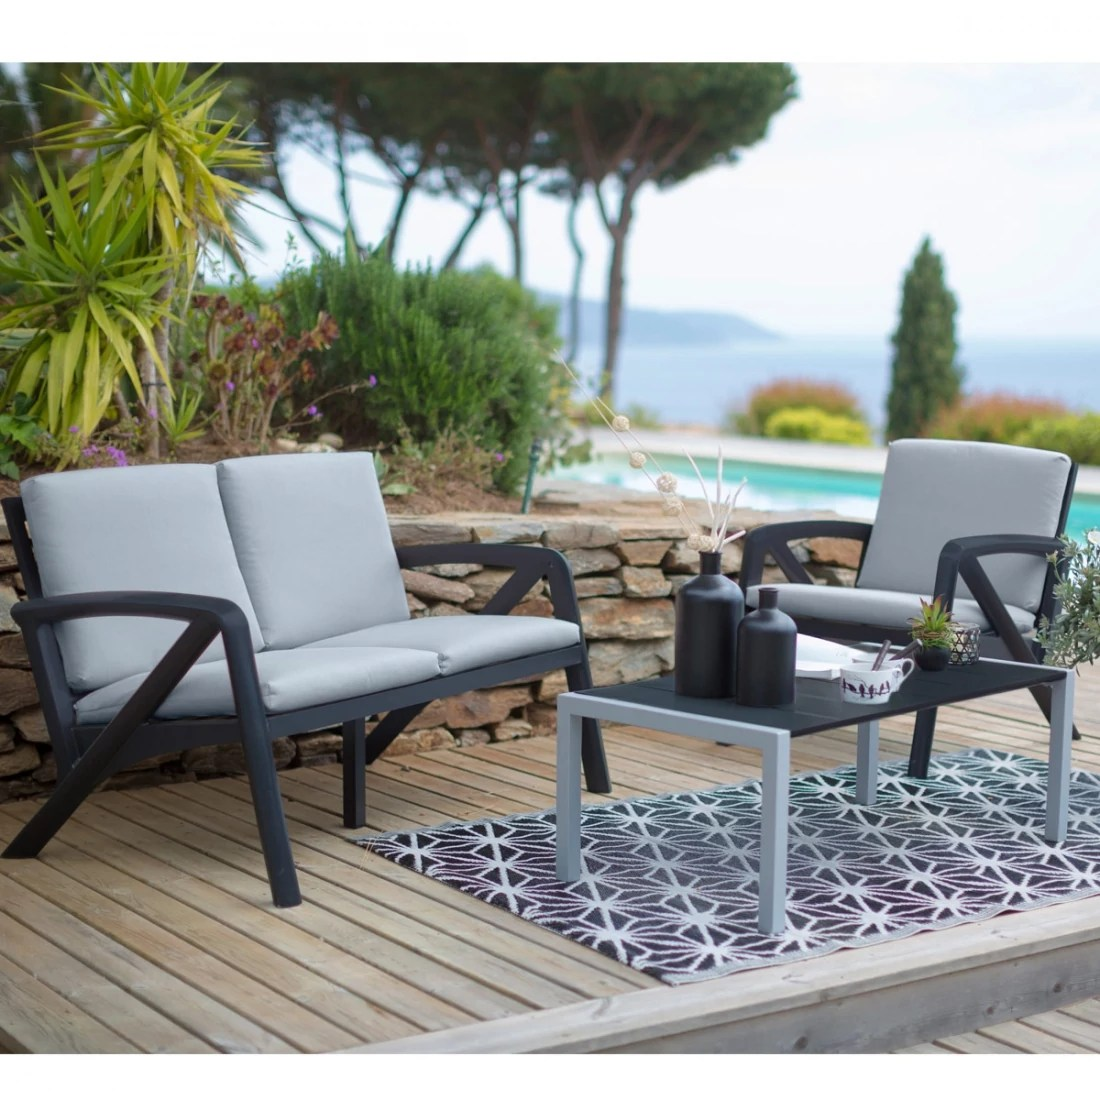 Salon De Jardin Pvc Design Salon De Jardin Lounge Sunday Barcelone Design Grosfillex